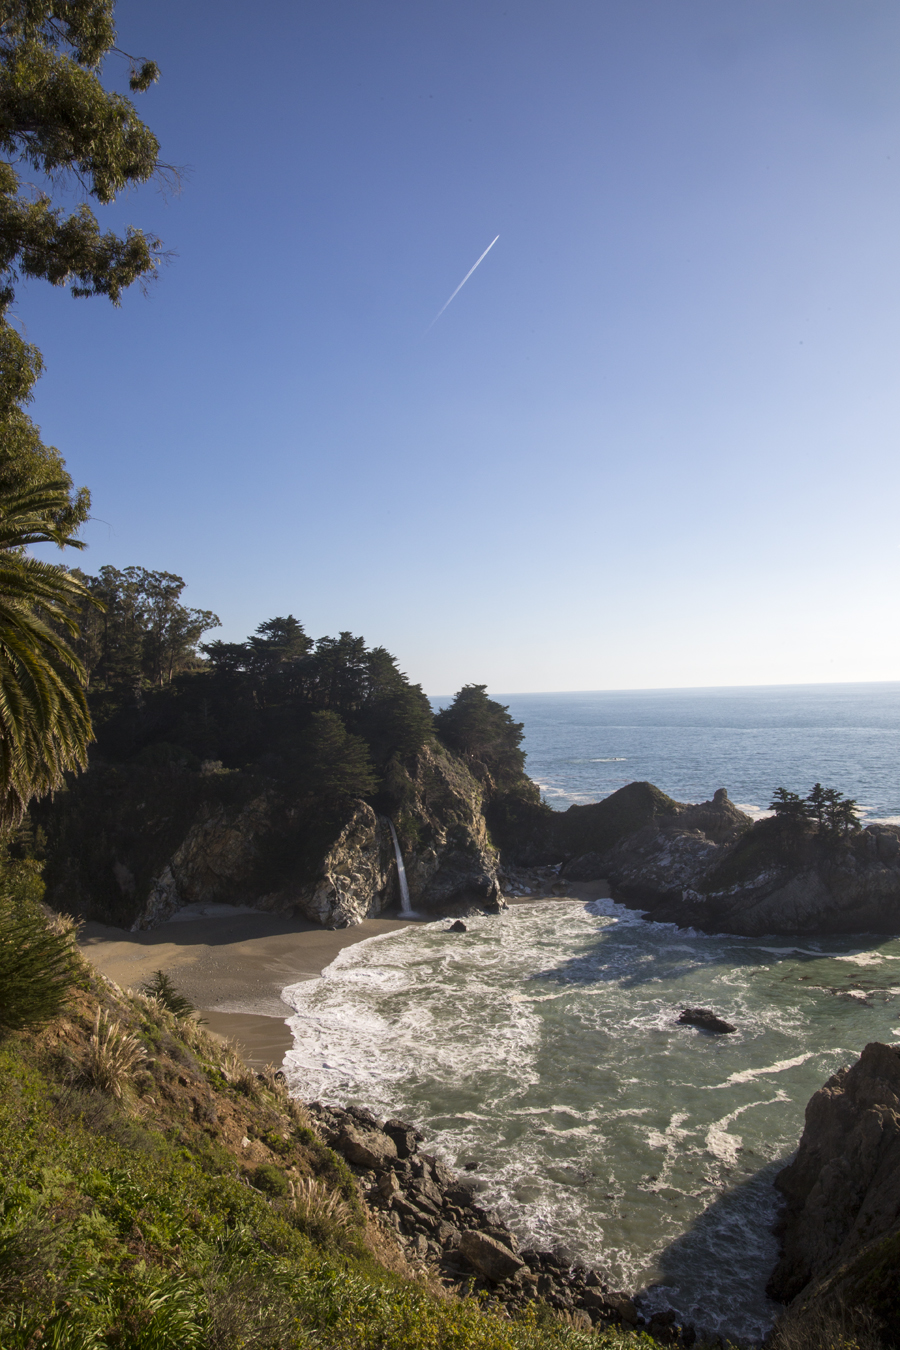 Viewing McWay Falls, a waterfall right on a beach, was one of the most magical things to see on Pacific Coast Highway.